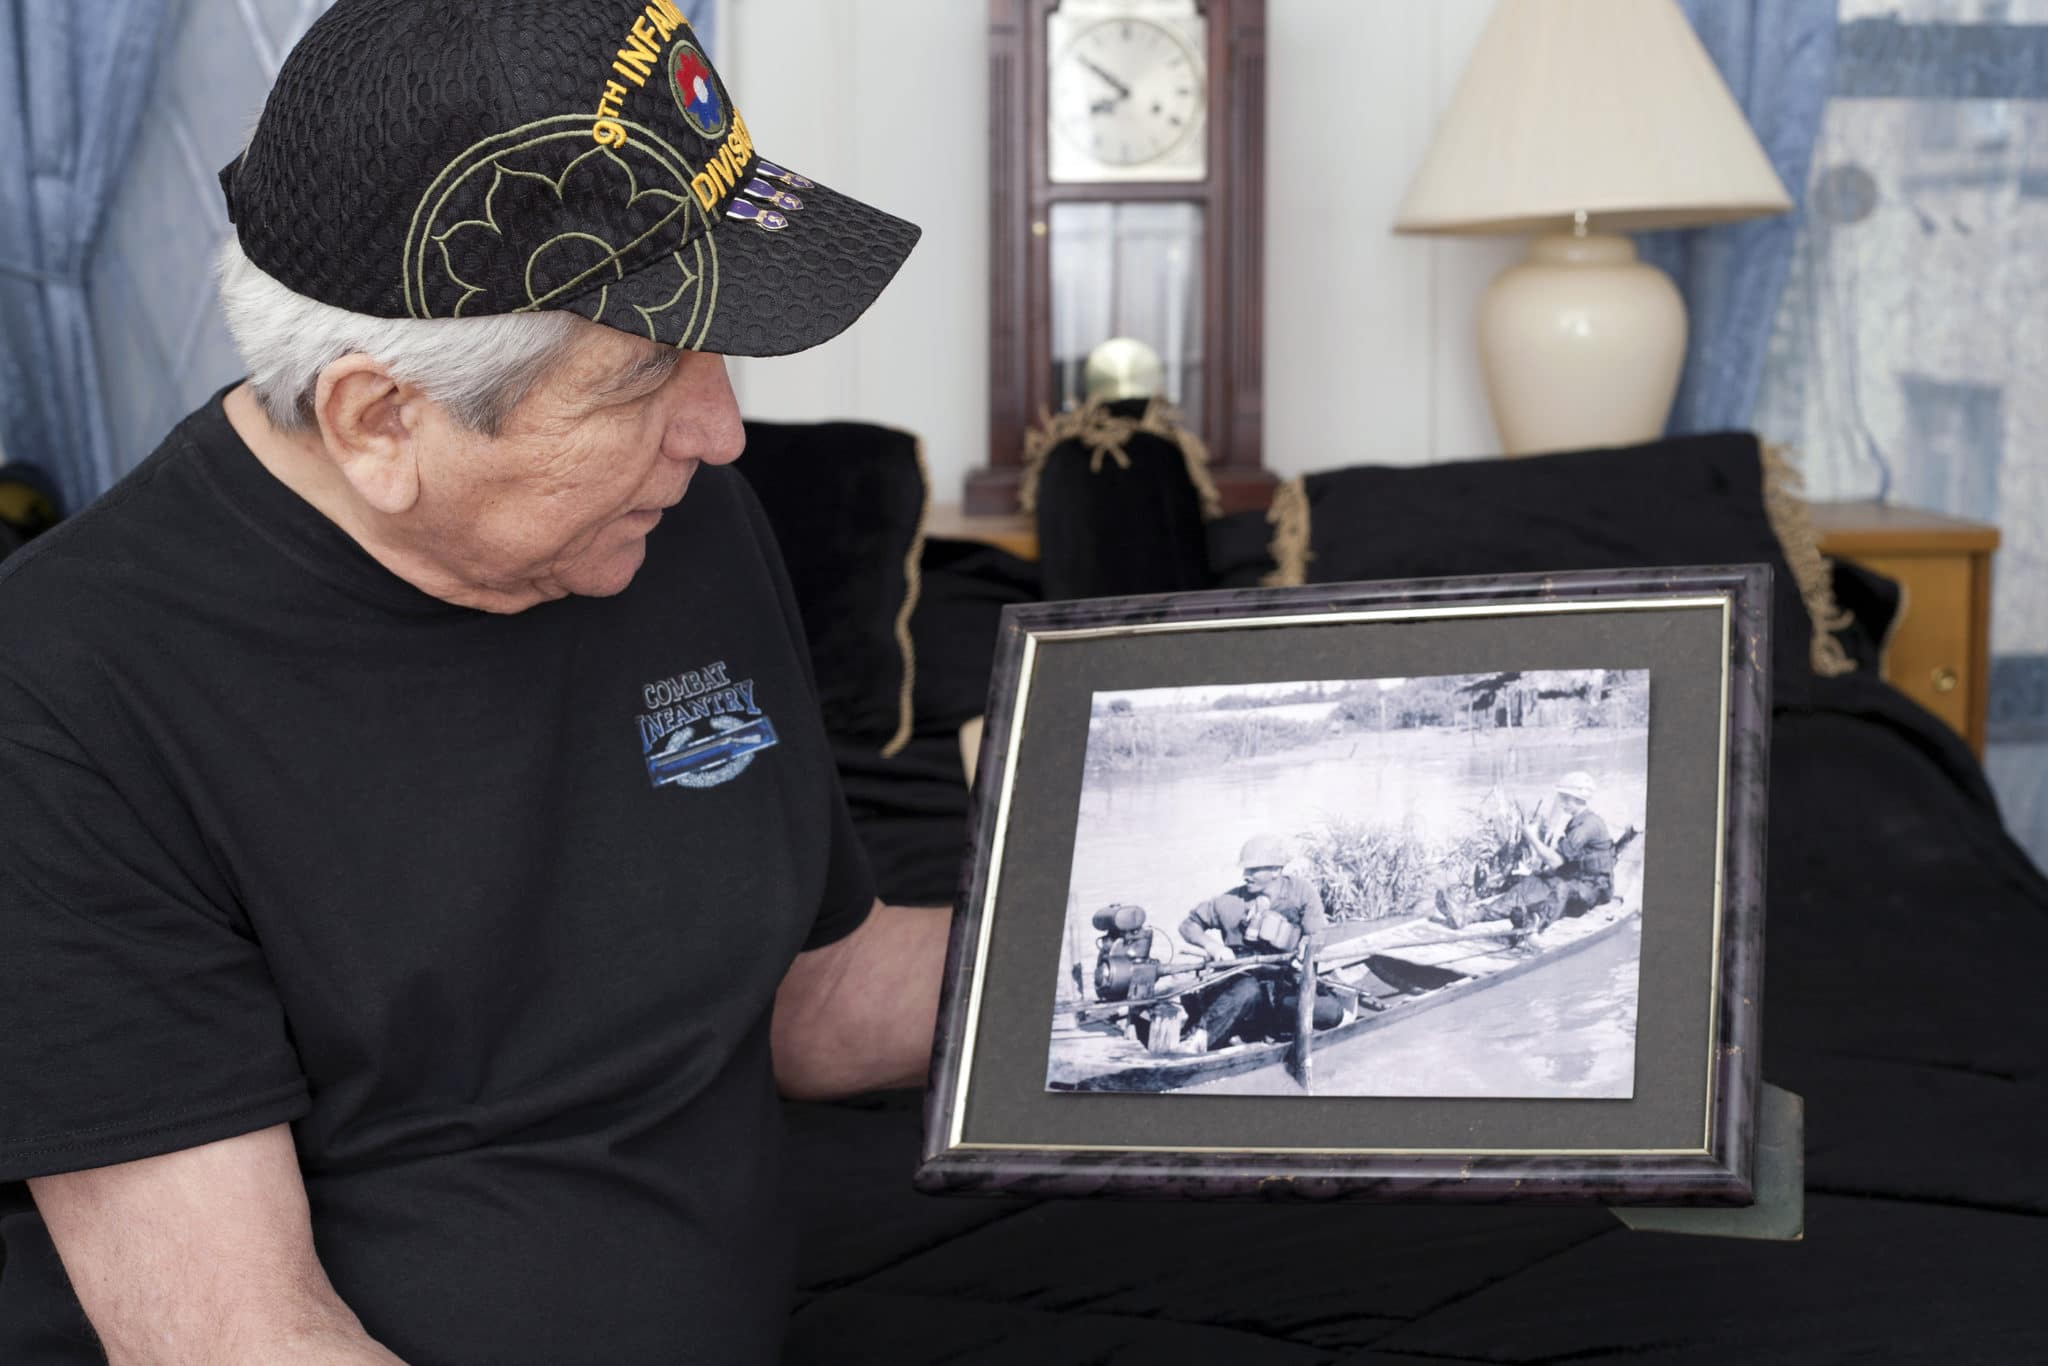 Vietnam War Veteran Looks At Old War Photo Of Himself